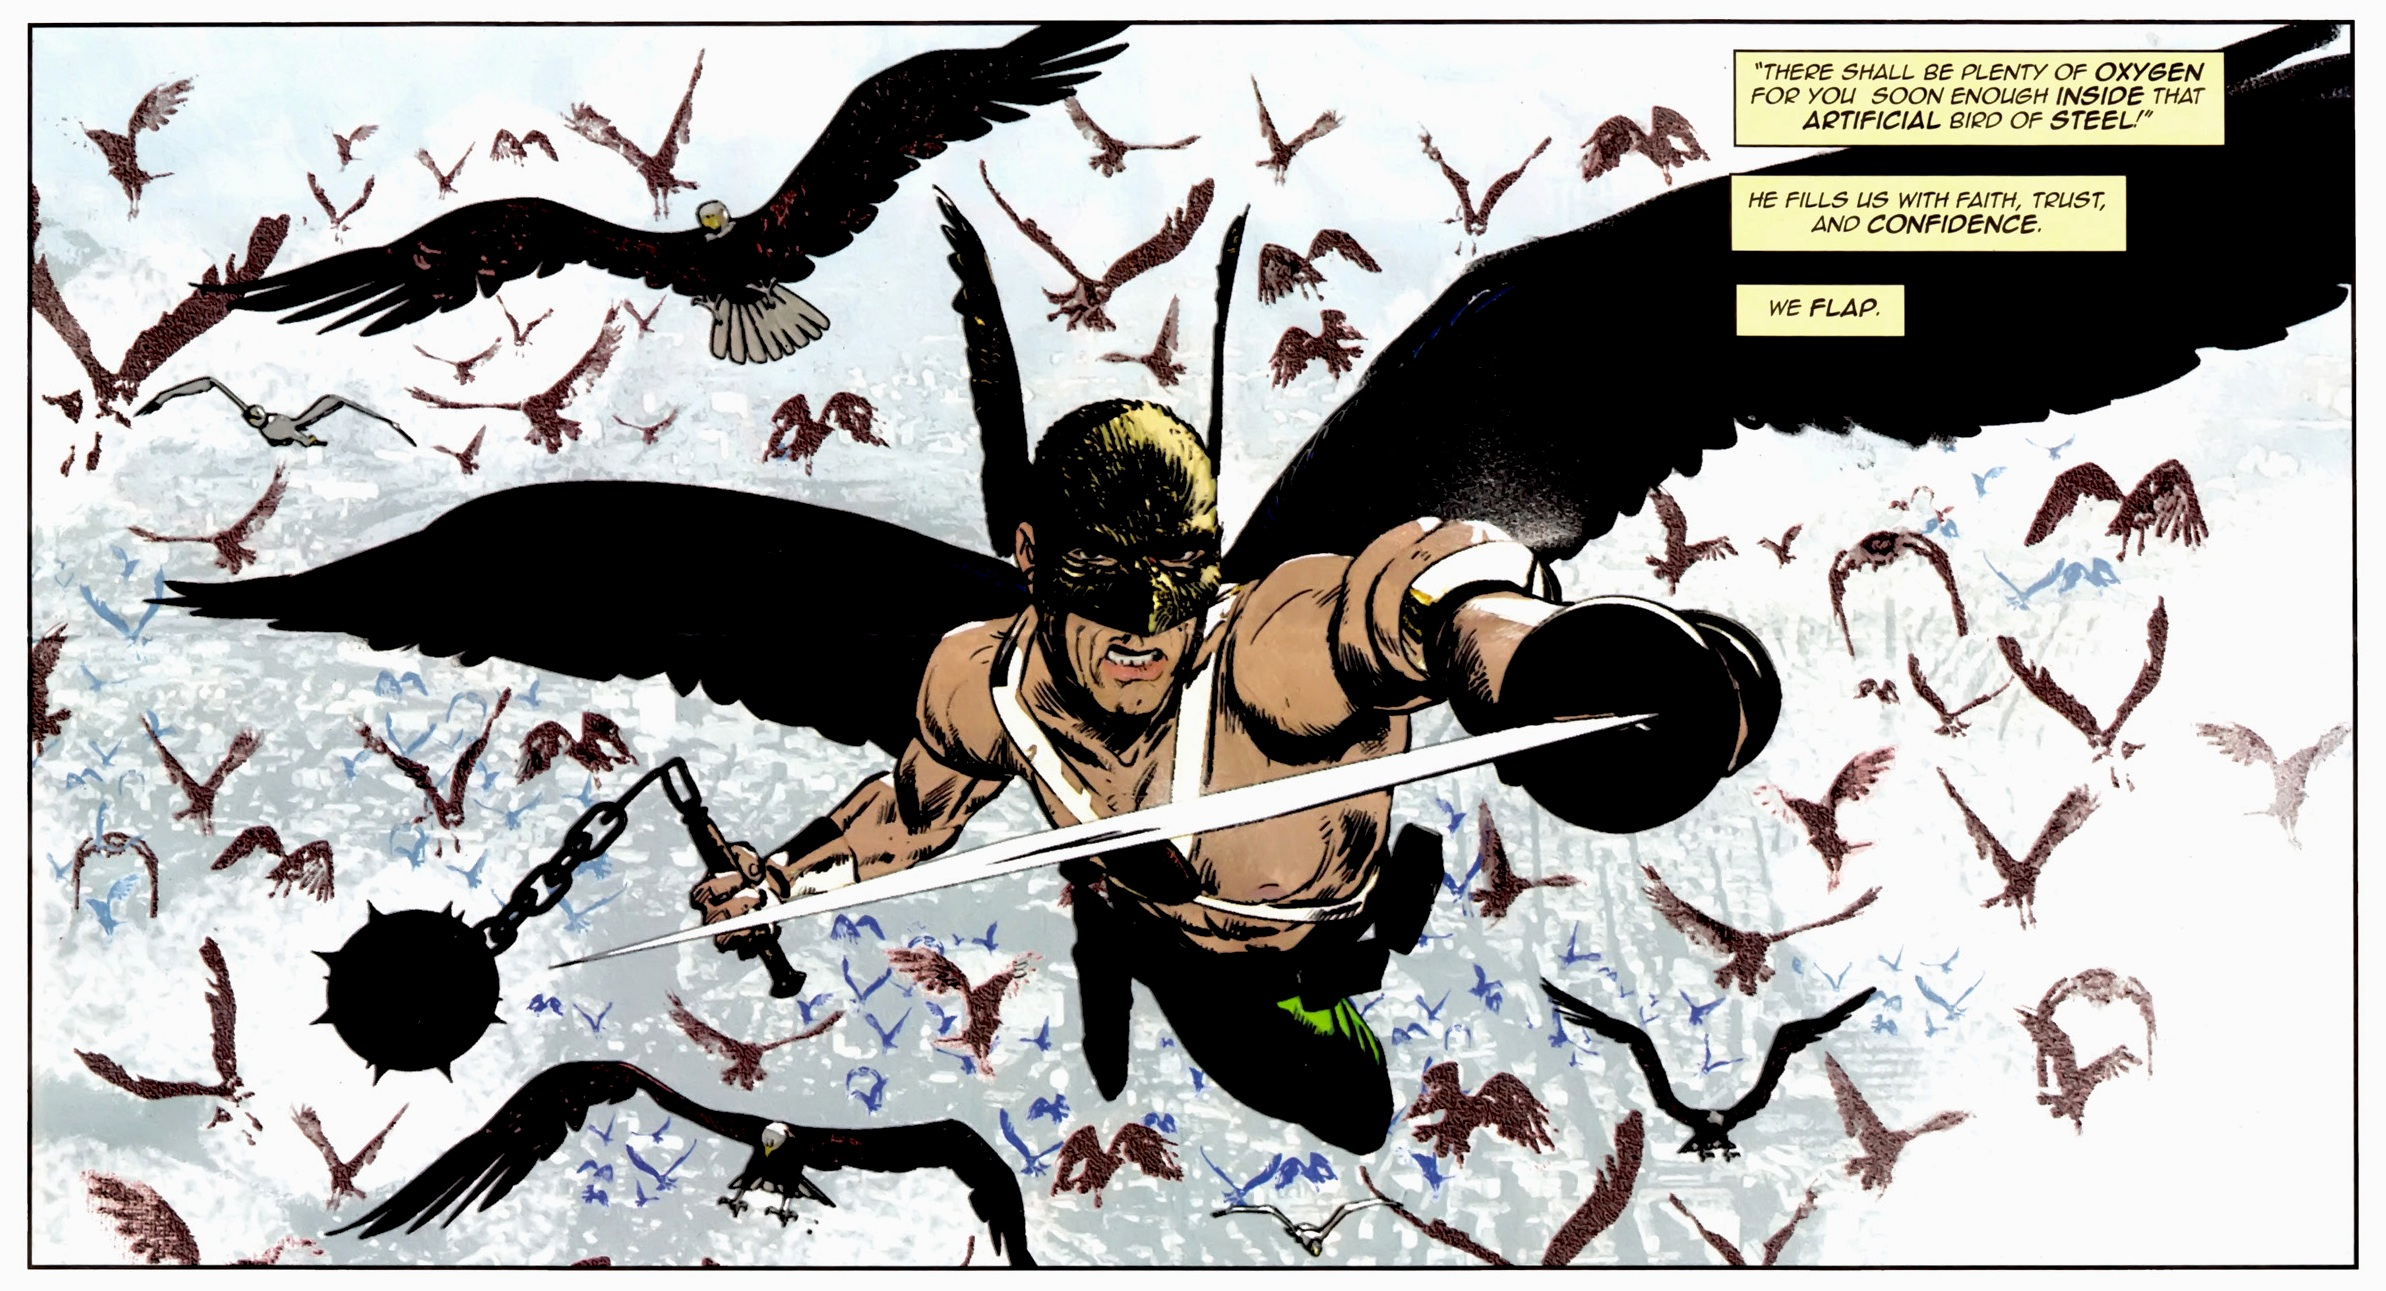 http://img3.wikia.nocookie.net/__cb20111128024023/marvel_dc/images/3/39/Hawkman_0023.jpg